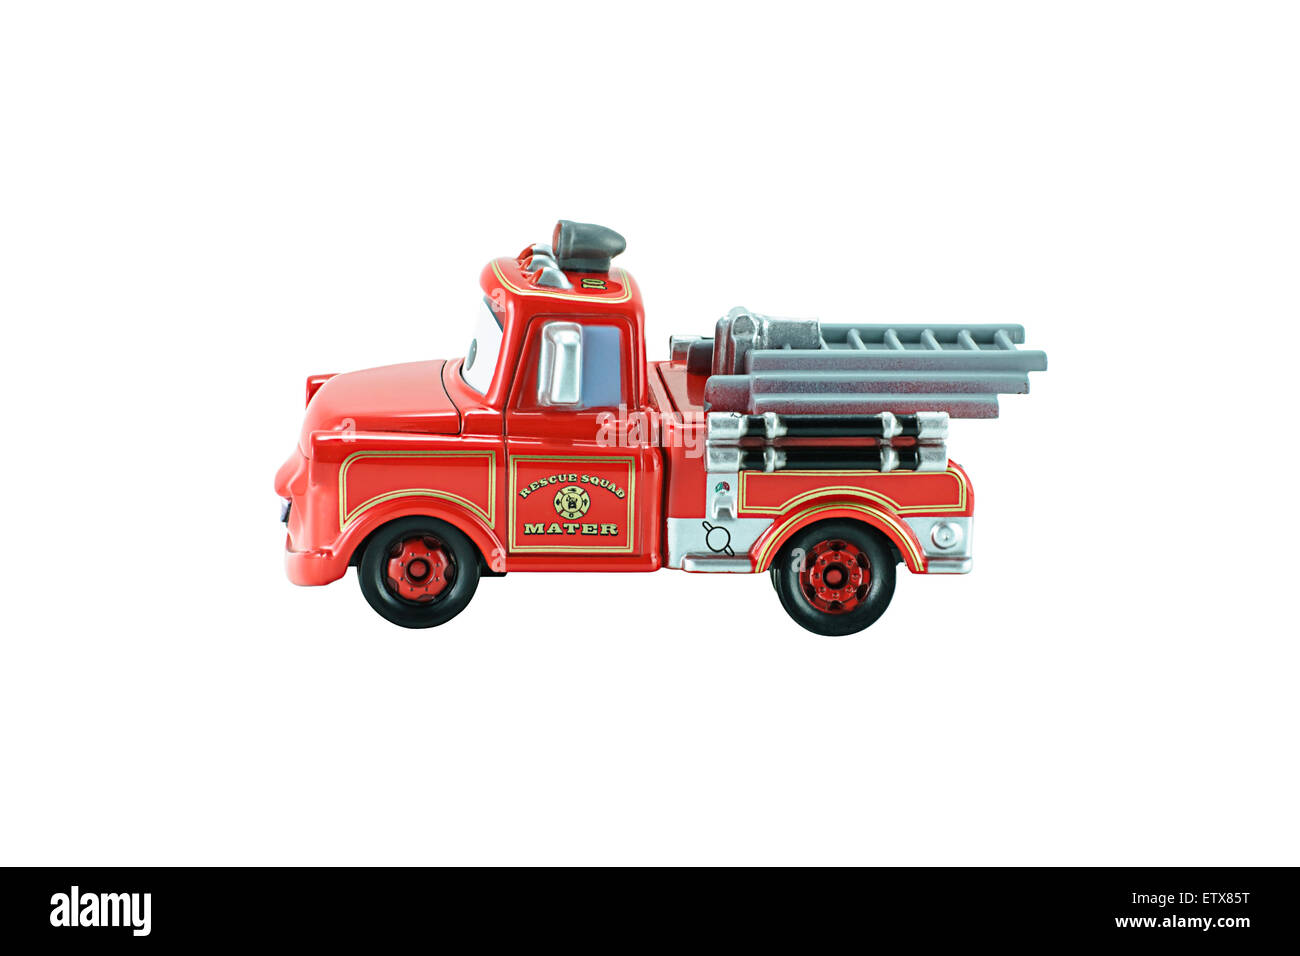 Bangkok,Thailand - February 05, 2015: Rescue squad Mater toy car a protagonist of the Disney Pixar feature film Stock Photo